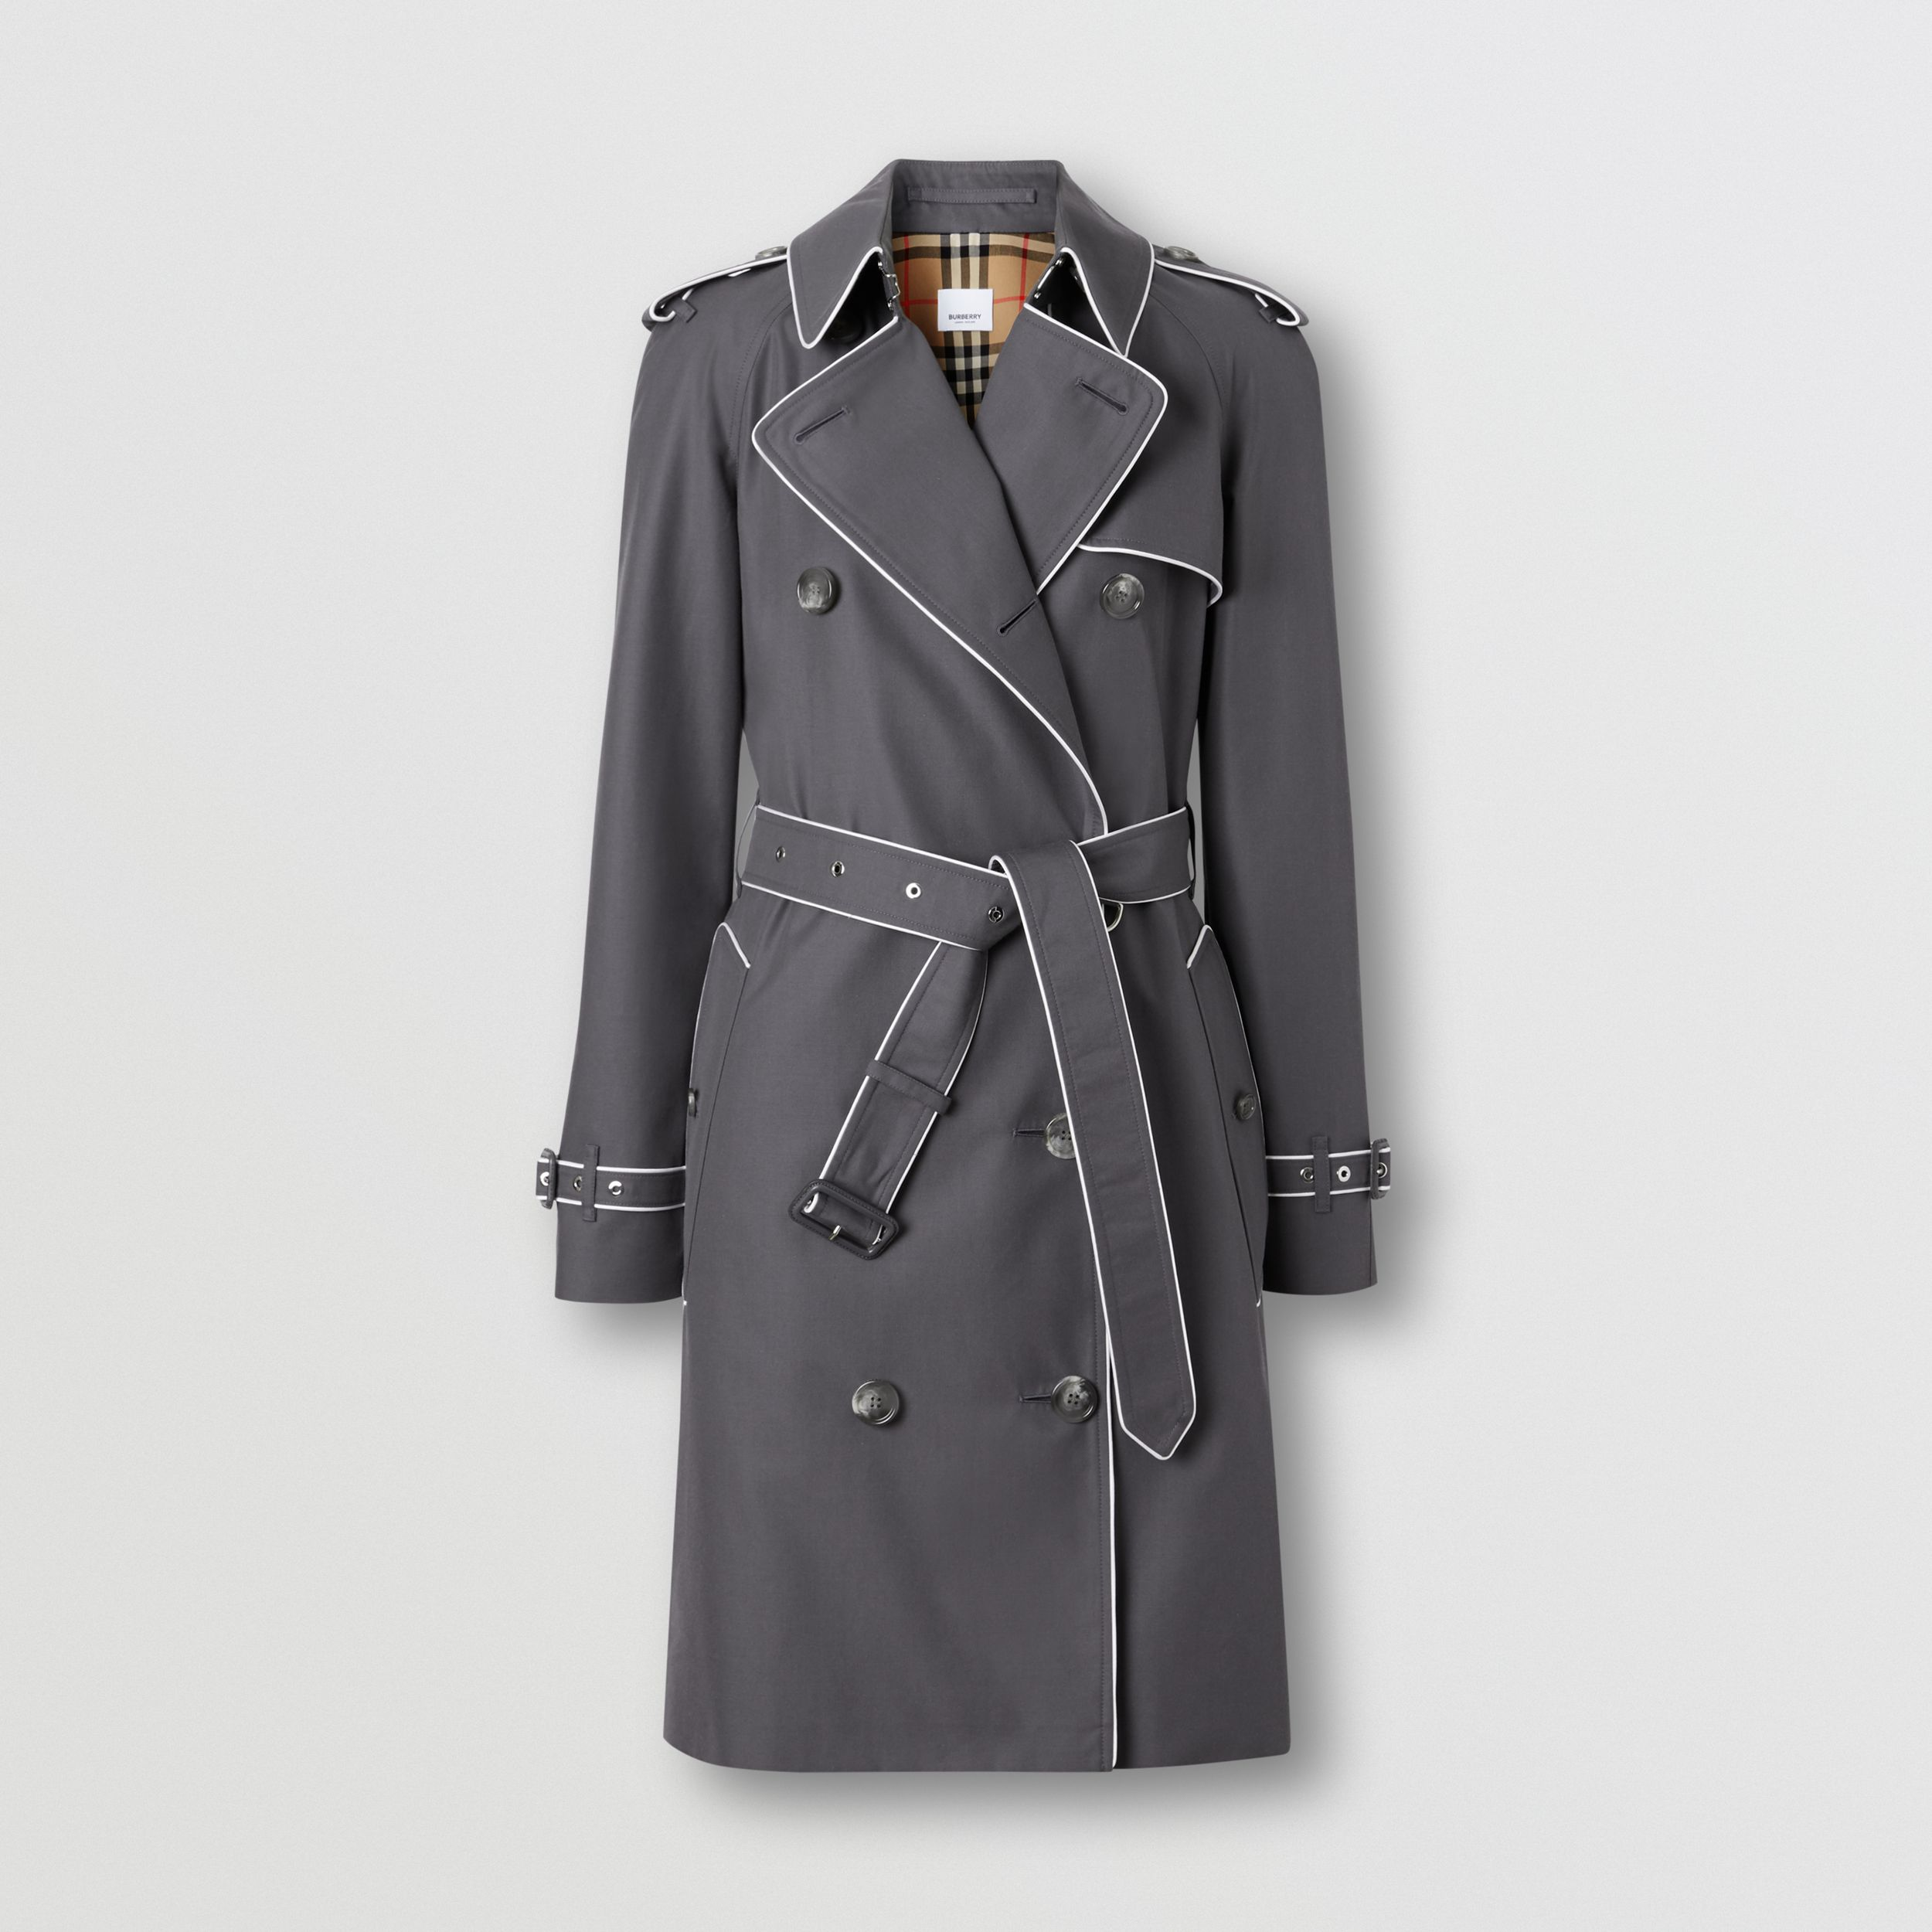 Piped Cotton Gabardine Trench Coat in Mid Grey - Women | Burberry - 4